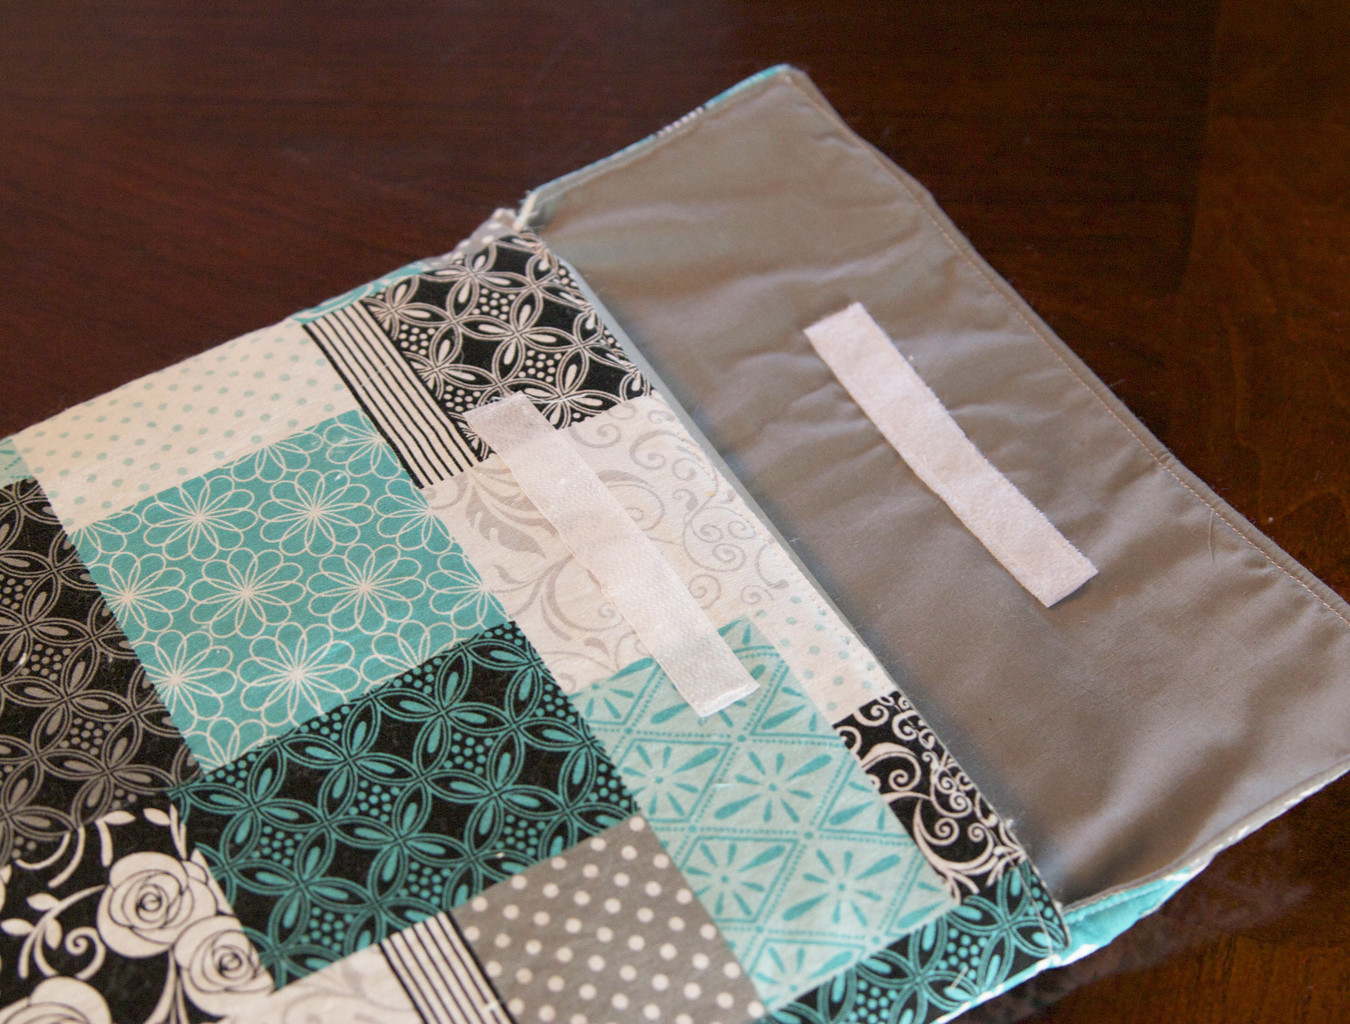 Best ideas about DIY Laptop Sleeve . Save or Pin DIY Laptop sleeve Now.